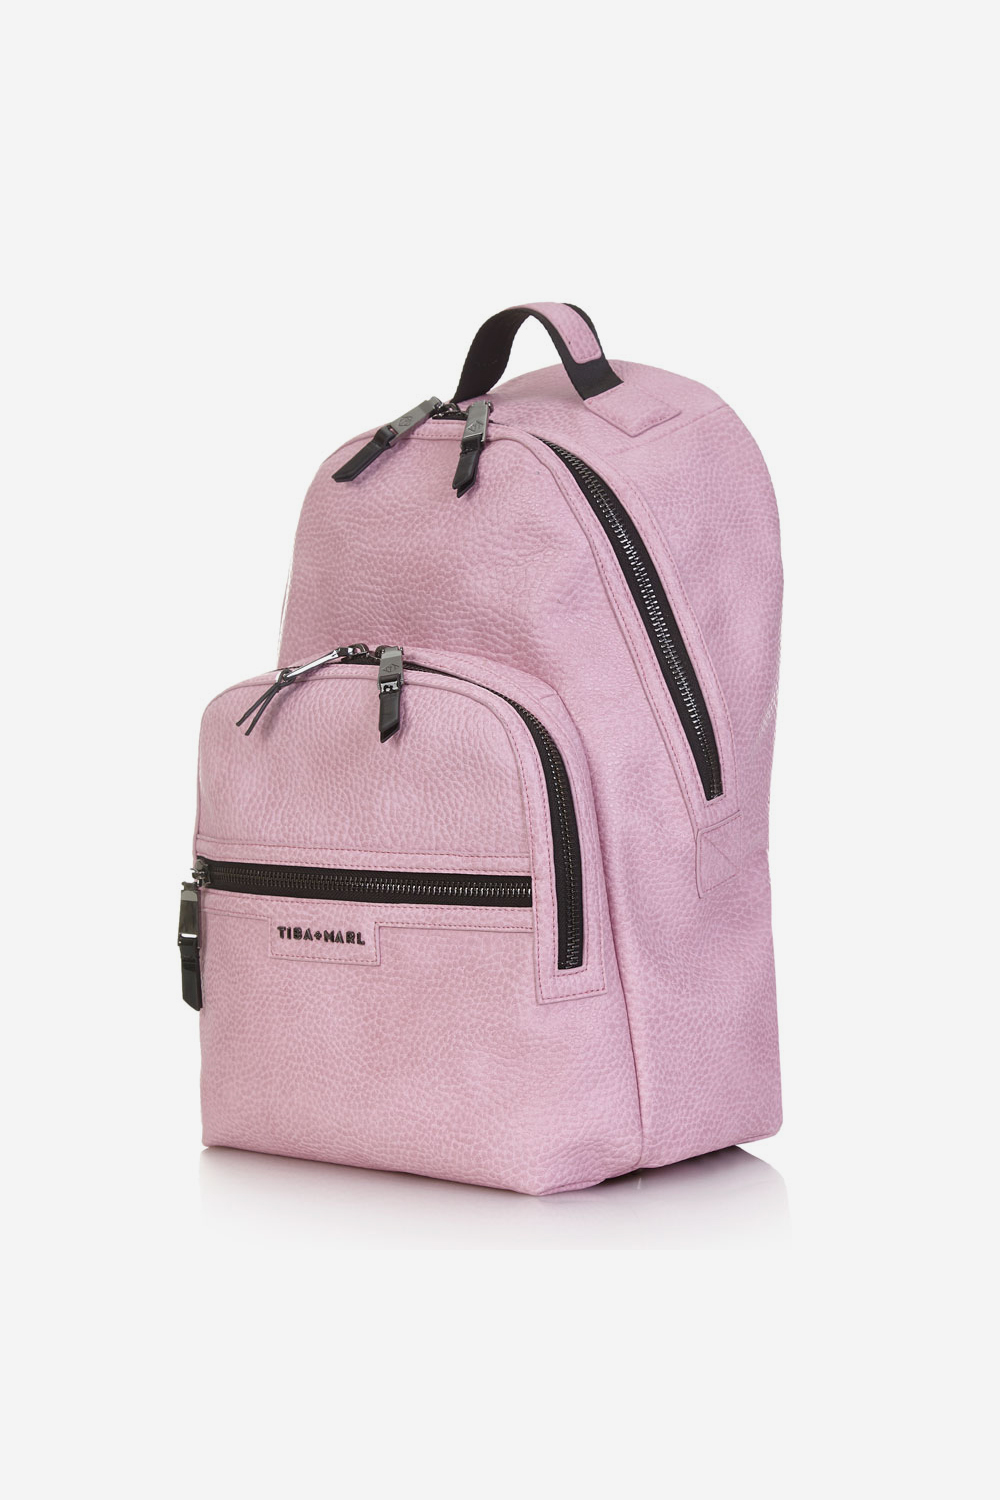 pink backpack cheap   OFF76% The Largest Catalog Discounts f1cbb819f1e29